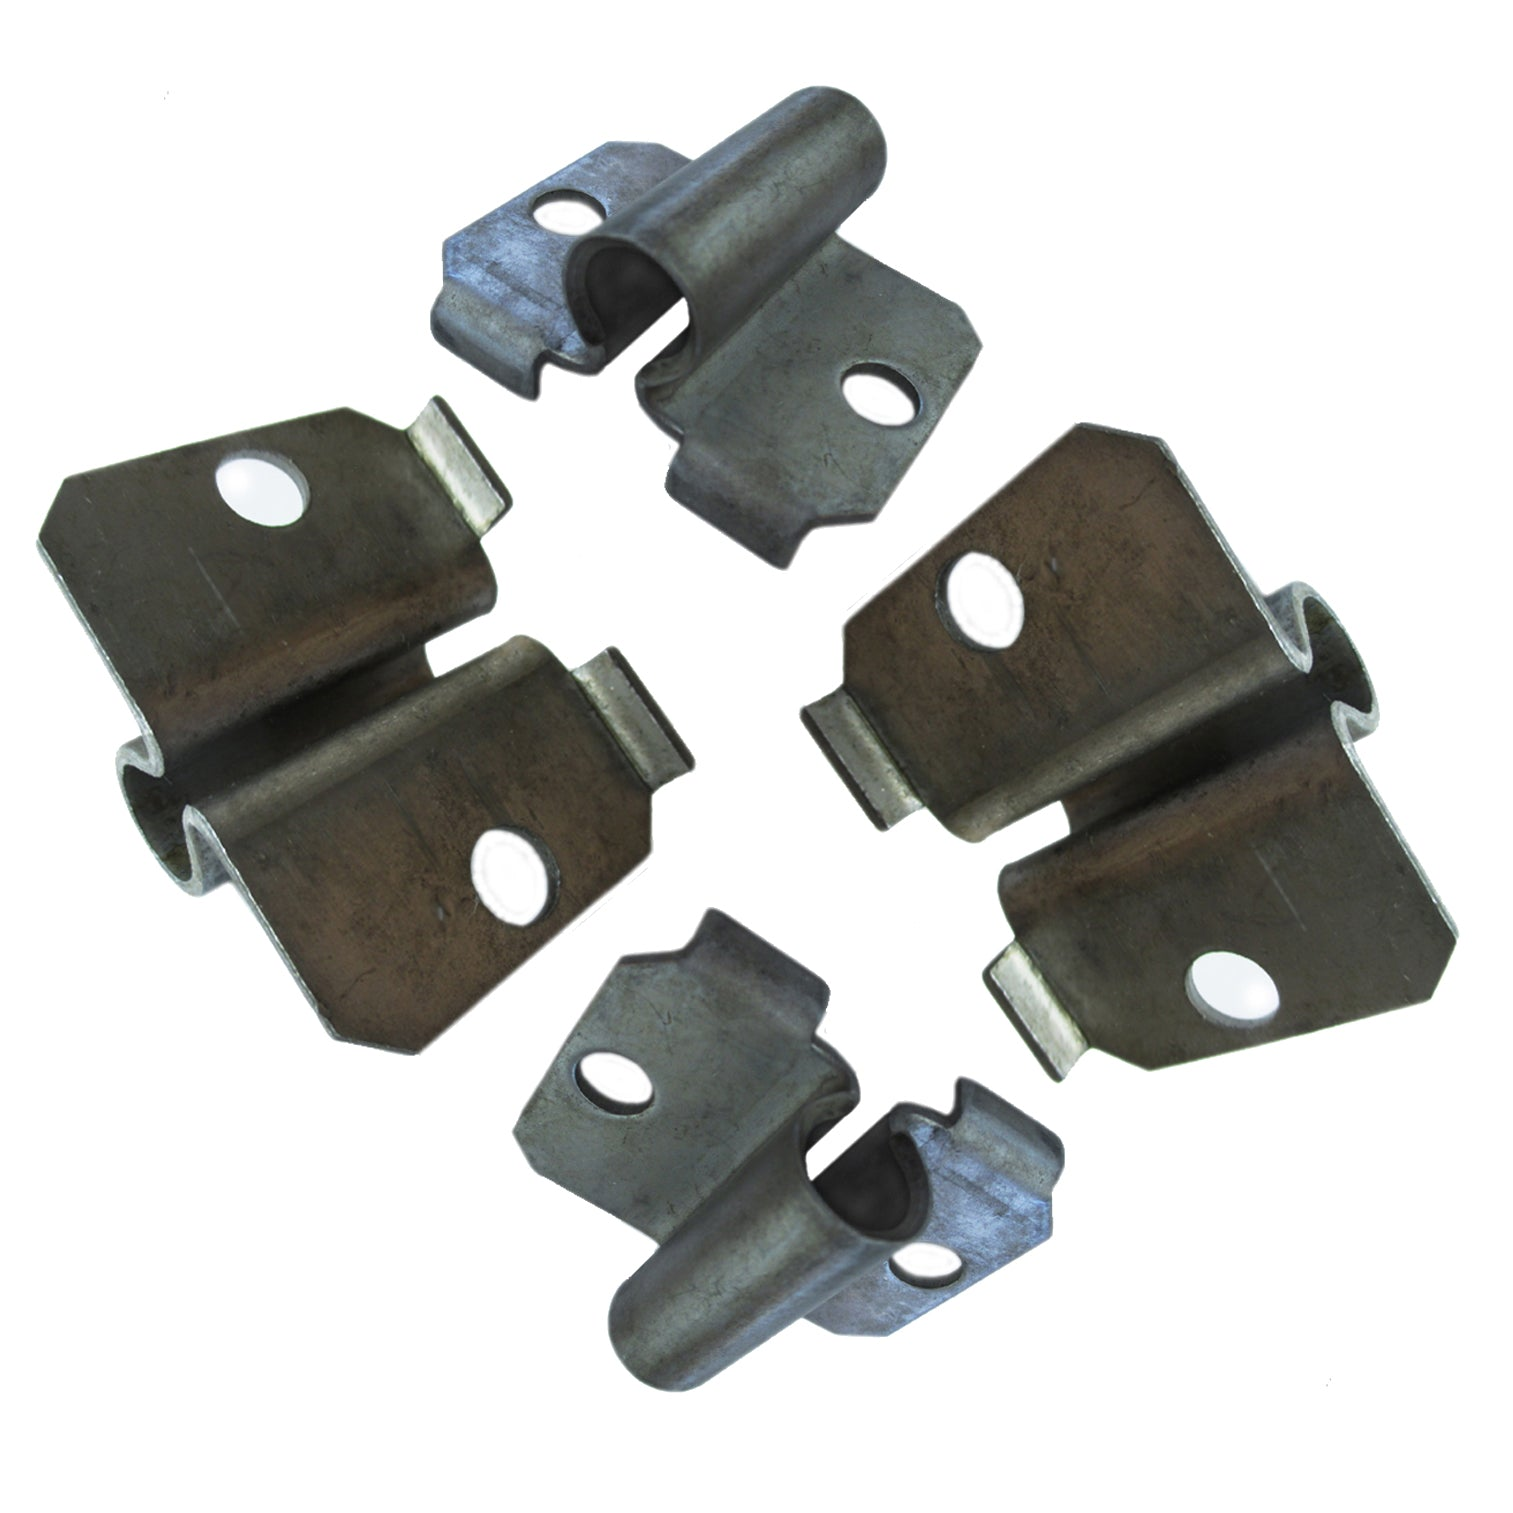 Photo shows a set of four Side Caster Sockets for desks and other furniture.